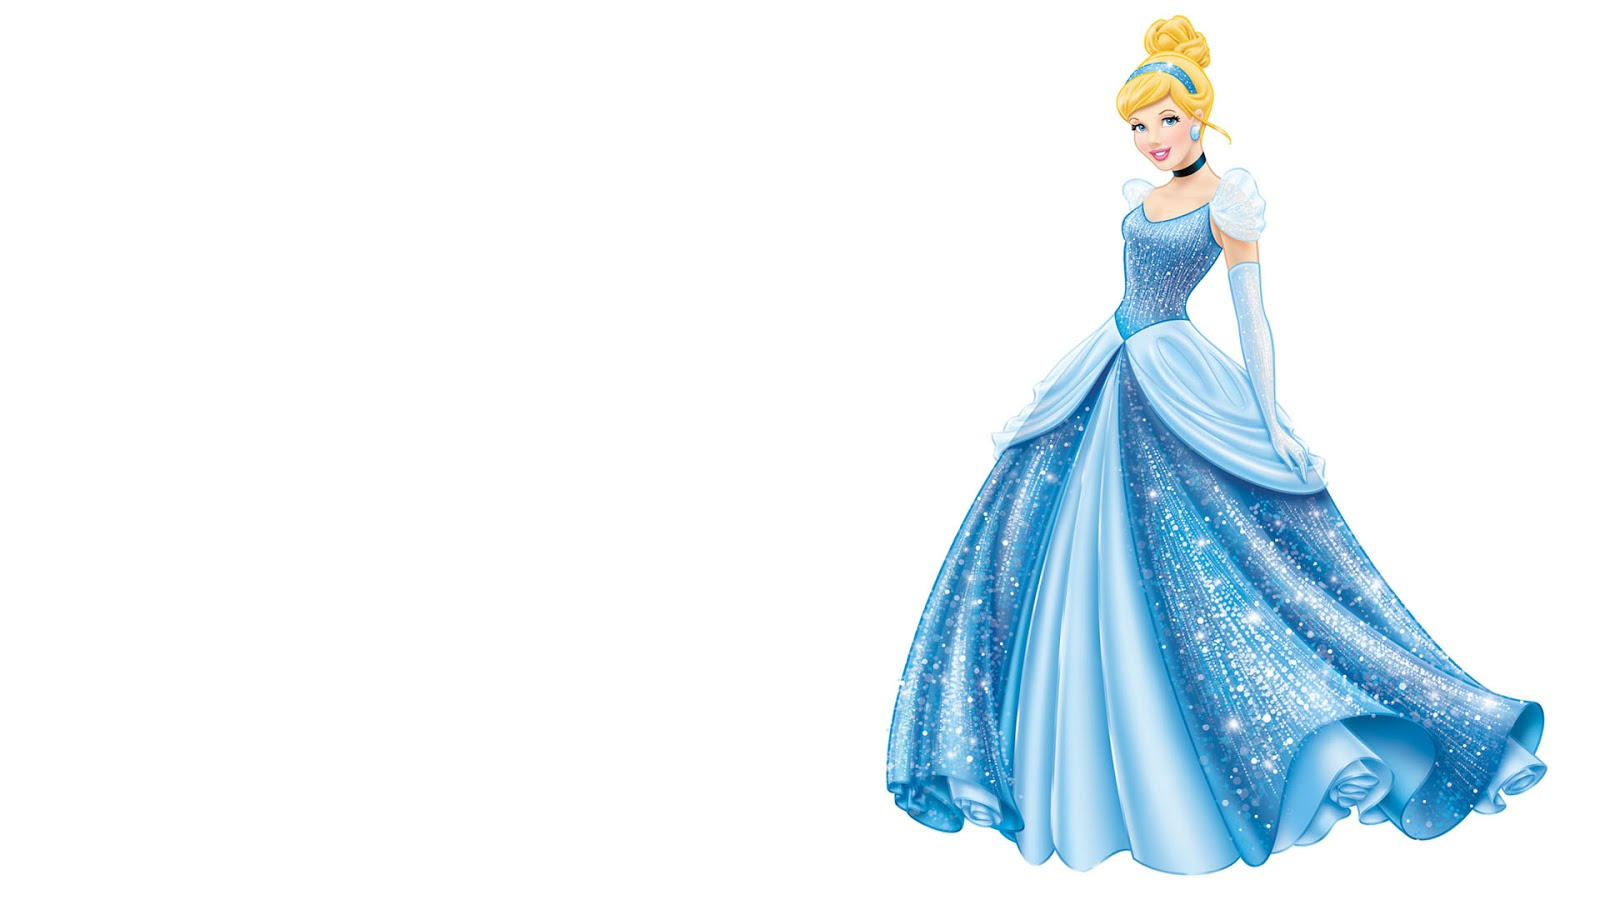 Cinderella wallpaper 15968 1600x900 px hdwallsource cinderella wallpaper 15968 thecheapjerseys Image collections